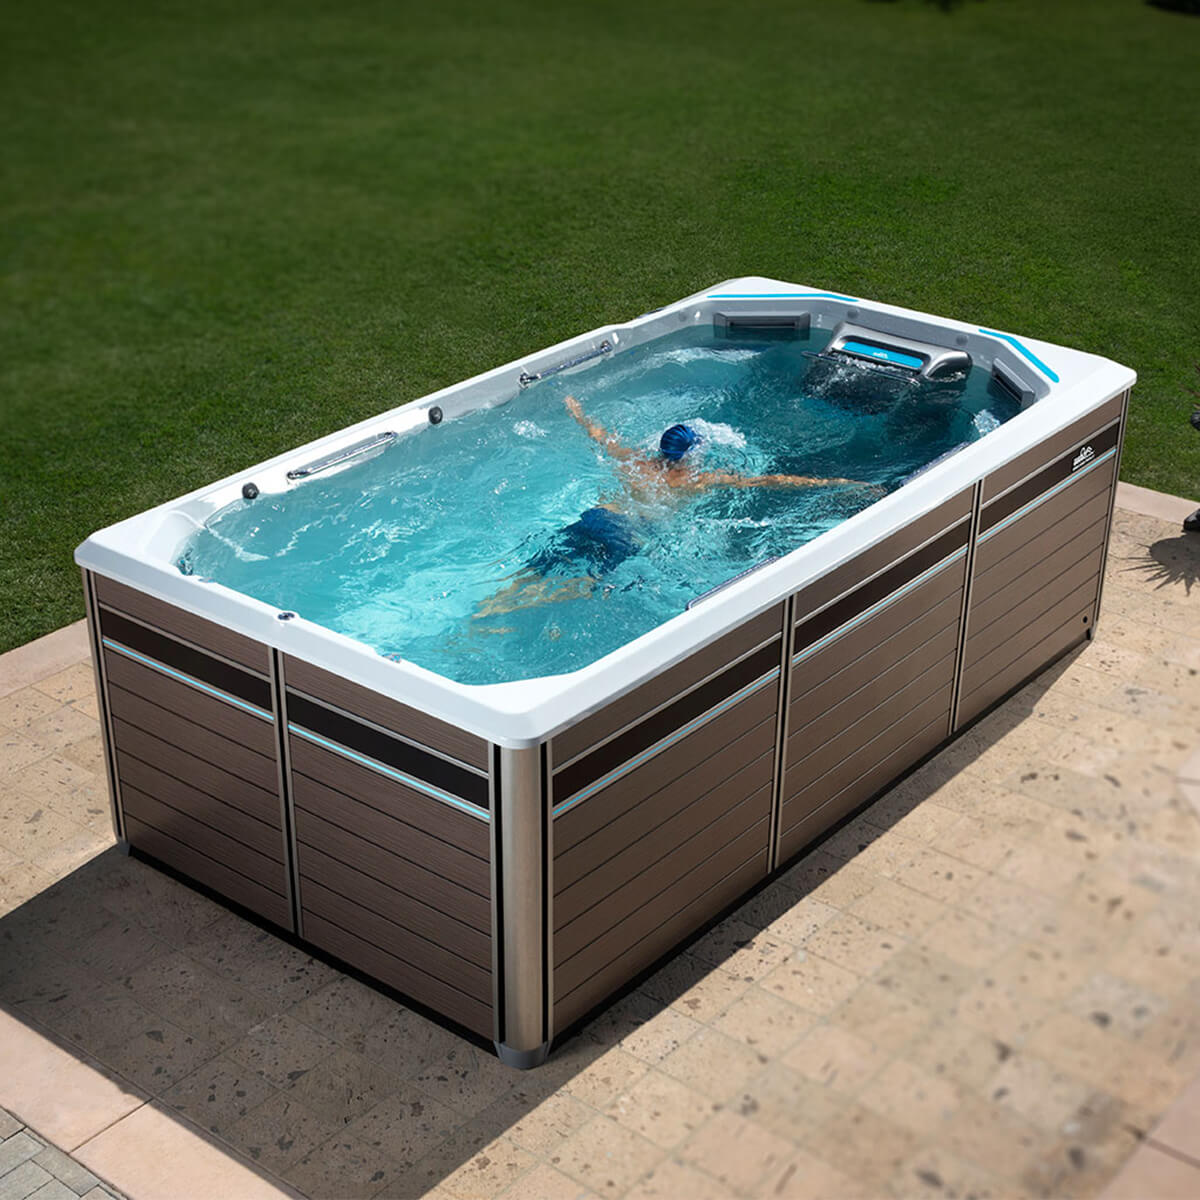 E550 Endless Pools swim spa